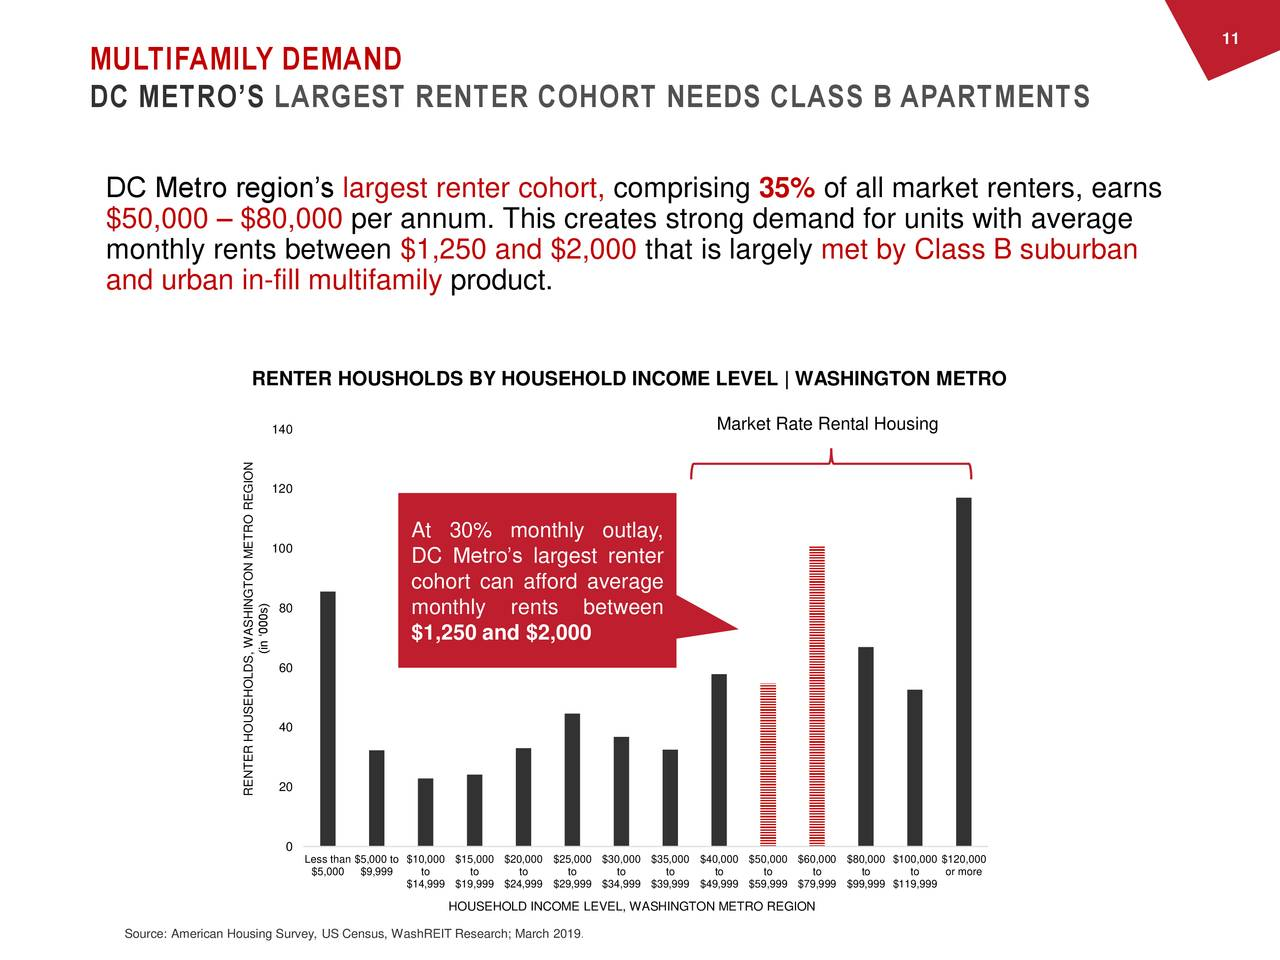 MULTIFAMILY DEMAND DC METRO'S LARGEST RENTER COHORT NEEDS CLASS B APARTMENTS DC Metro region's largest renter cohort, comprising 35% of all market renters, earns $50,000 – $80,000 per annum. This creates strong demand for units with average monthly rents between $1,250 and $2,000 that is largely met by Class B suburban and urban in-fill multifamily product. RENTER HOUSHOLDS BY HOUSEHOLD INCOME LEVEL | WASHINGTON METRO 140 Market Rate Rental Housing 120 At 30% monthly outlay, 100 DC Metro's largest renter cohort can afford average 80 monthly rents between $1,250 and $2,000 (in '000s) 60 40 RENTER HOUSEHOLDS, WASHINGTON METRO REGION 0 L$5,000a$9,99900too $1to000 $to,000to20,00to$25,to0 $30to00 $to,000to40,00to$50,to0 $or more$80,000 $100,000 $120,000 $14,999 $19,999 $24,999 $29,999 $34,999 $39,999 $49,999 $59,999 $79,999 $99,999 $119,999 HOUSEHOLD INCOME LEVEL, WASHINGTON METRO REGION Source: American Housing Survey, US Census, WashREIT Research; March 2019.